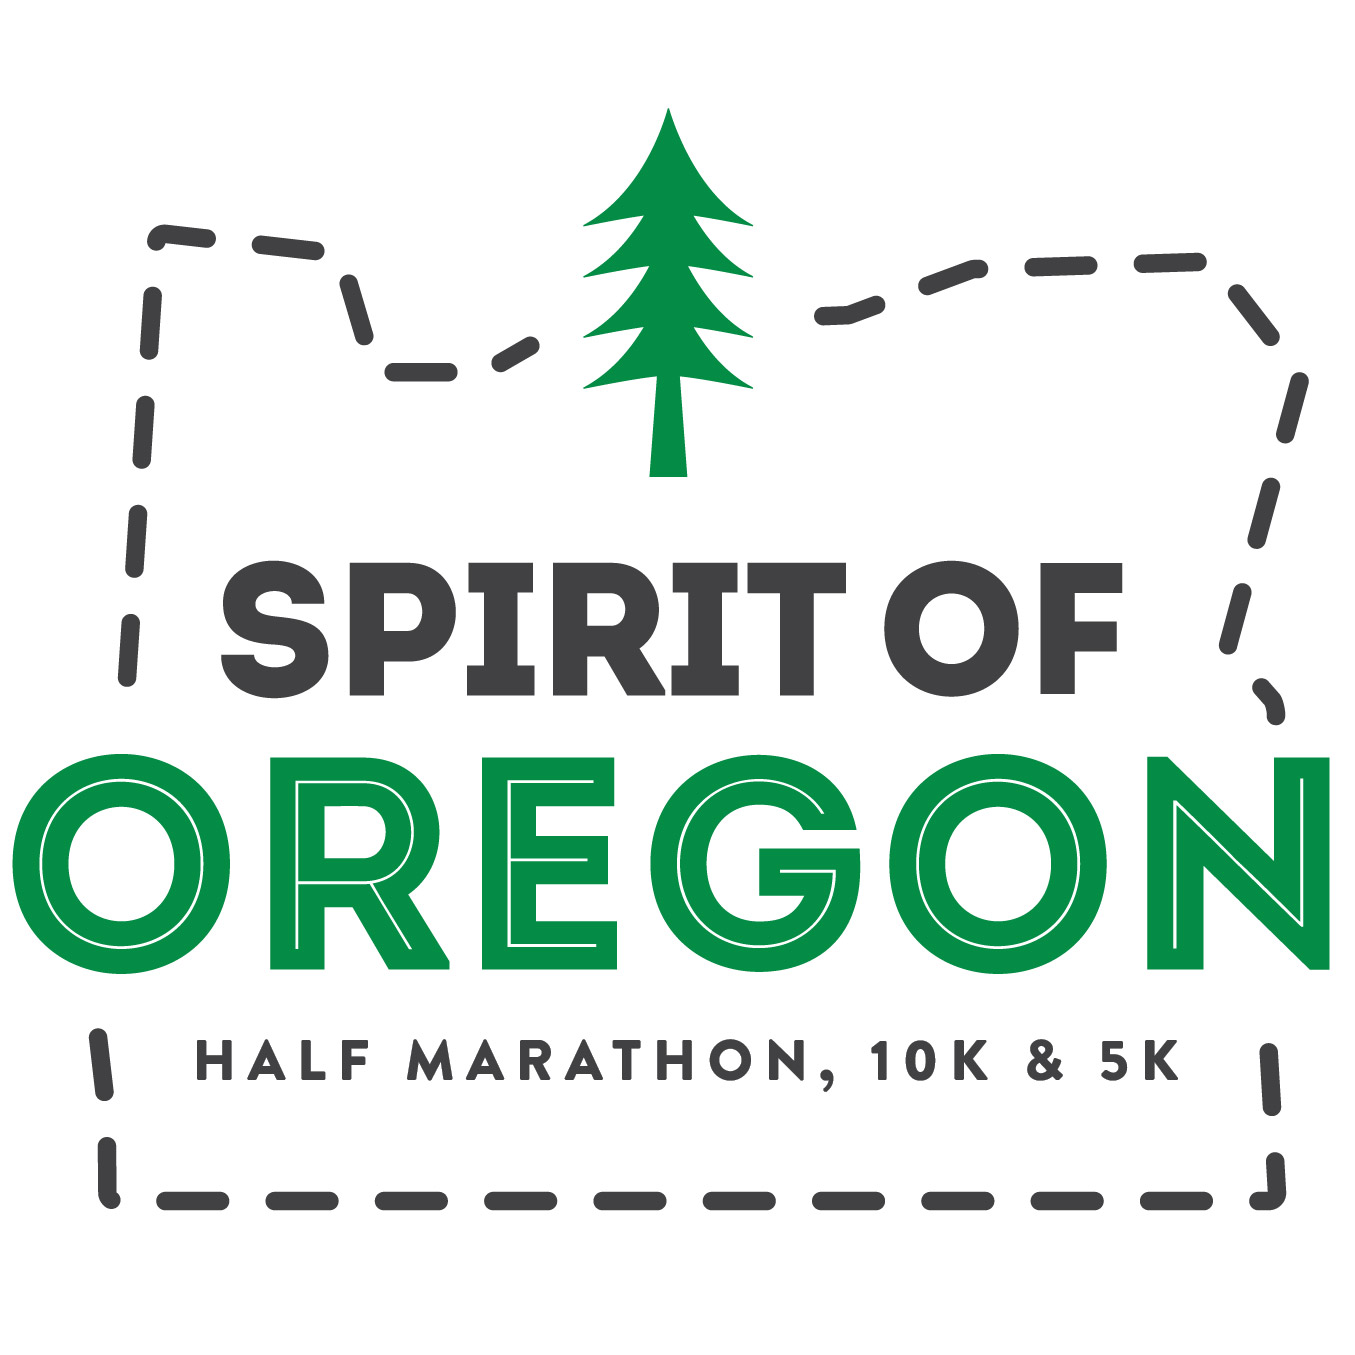 Spirit of Oregon Half Marathon, 10K & 5K